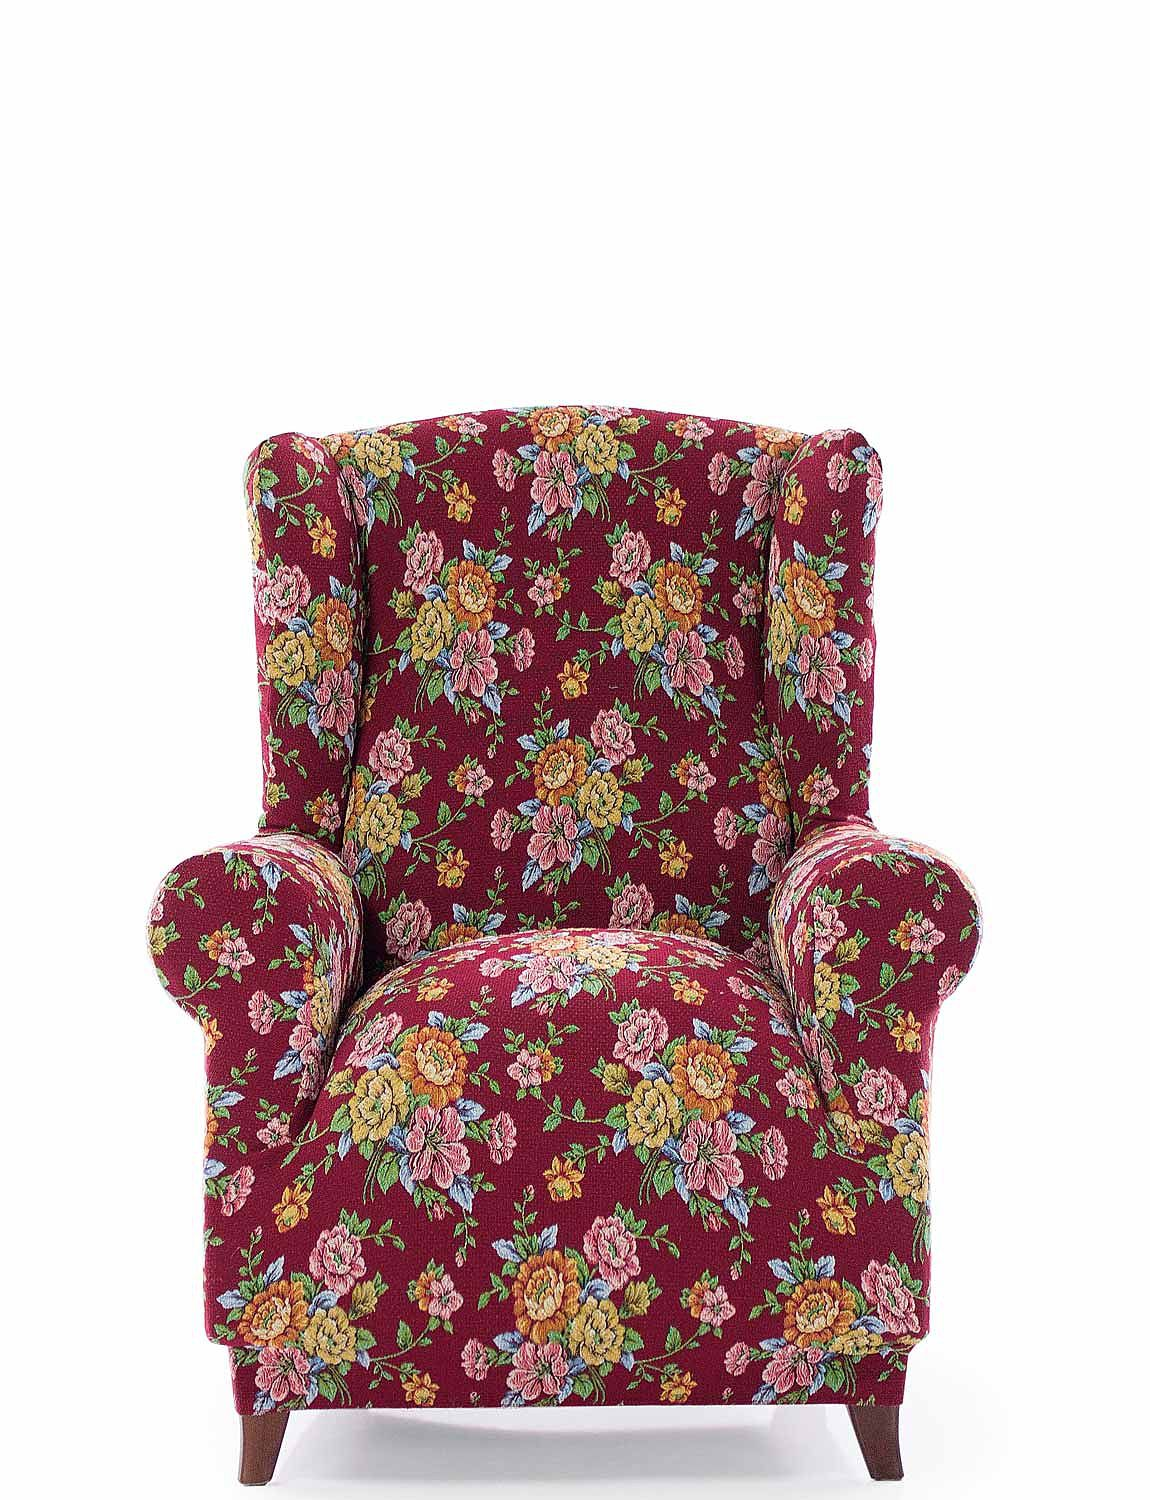 Groovy Corby 2 Way Stretch Wing Chair Cover Lamtechconsult Wood Chair Design Ideas Lamtechconsultcom